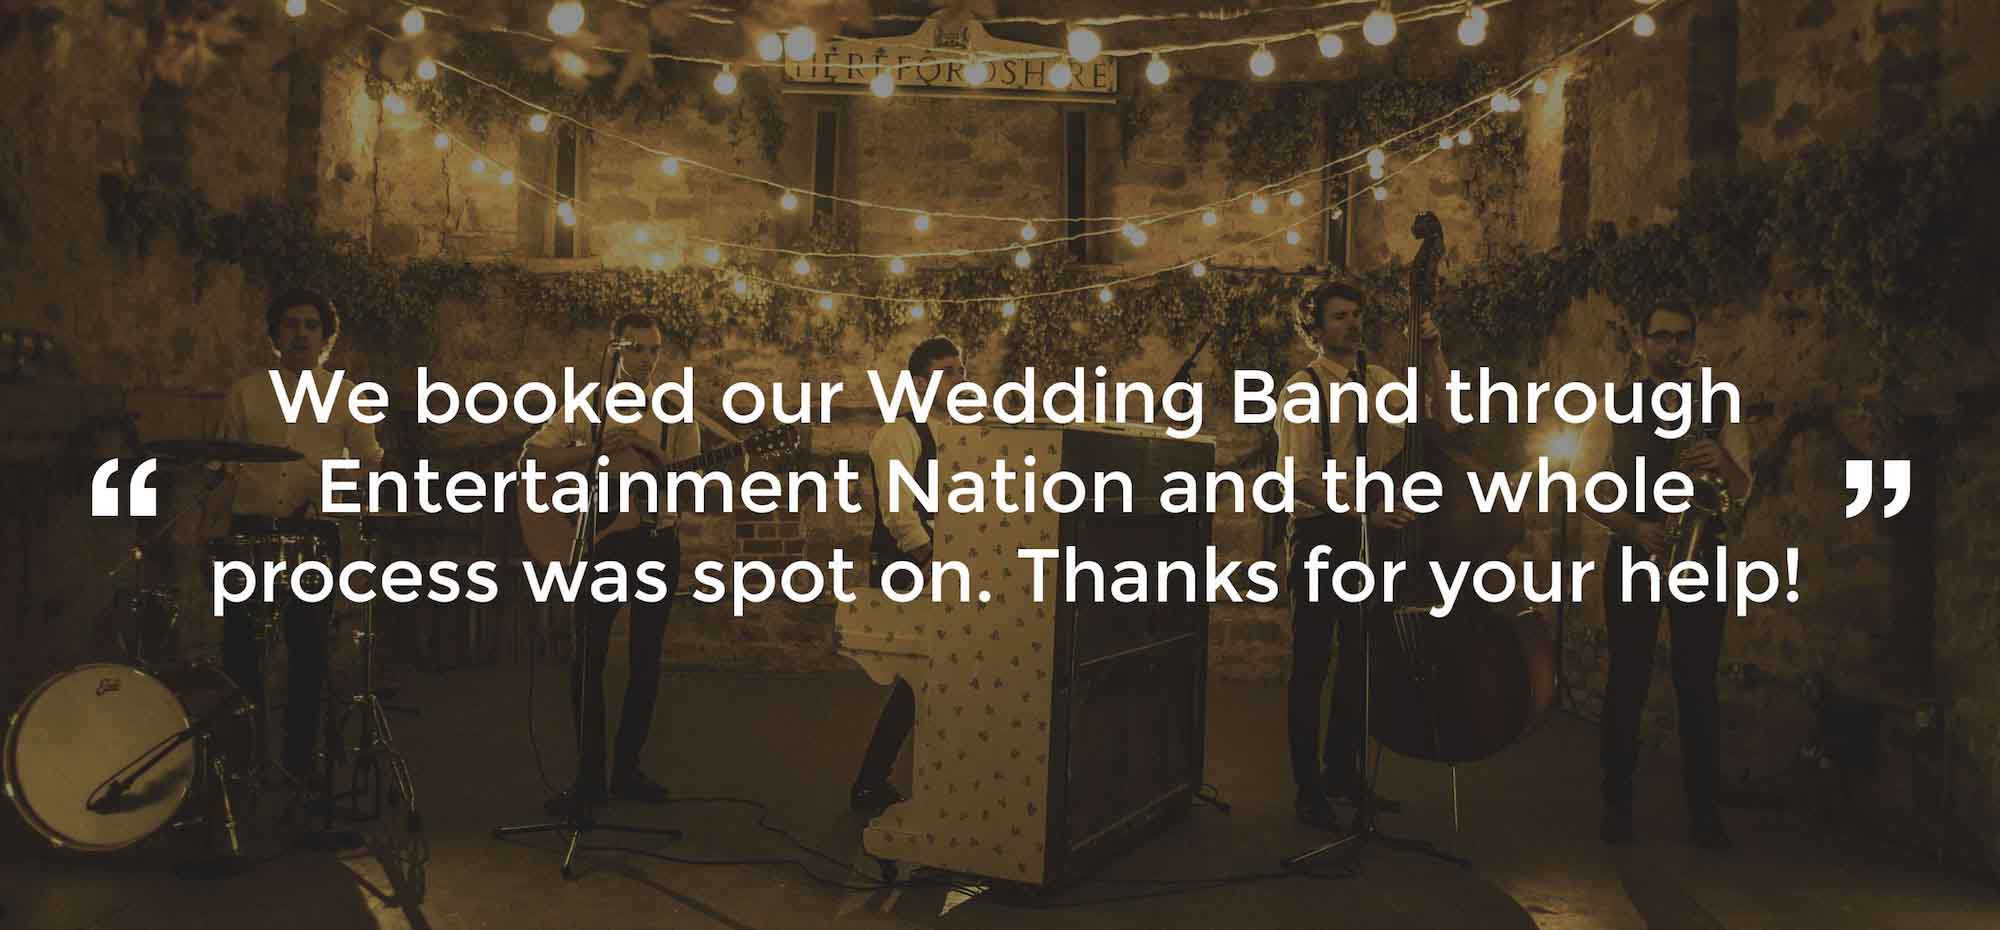 Client Review of a Wedding Band Wrexham